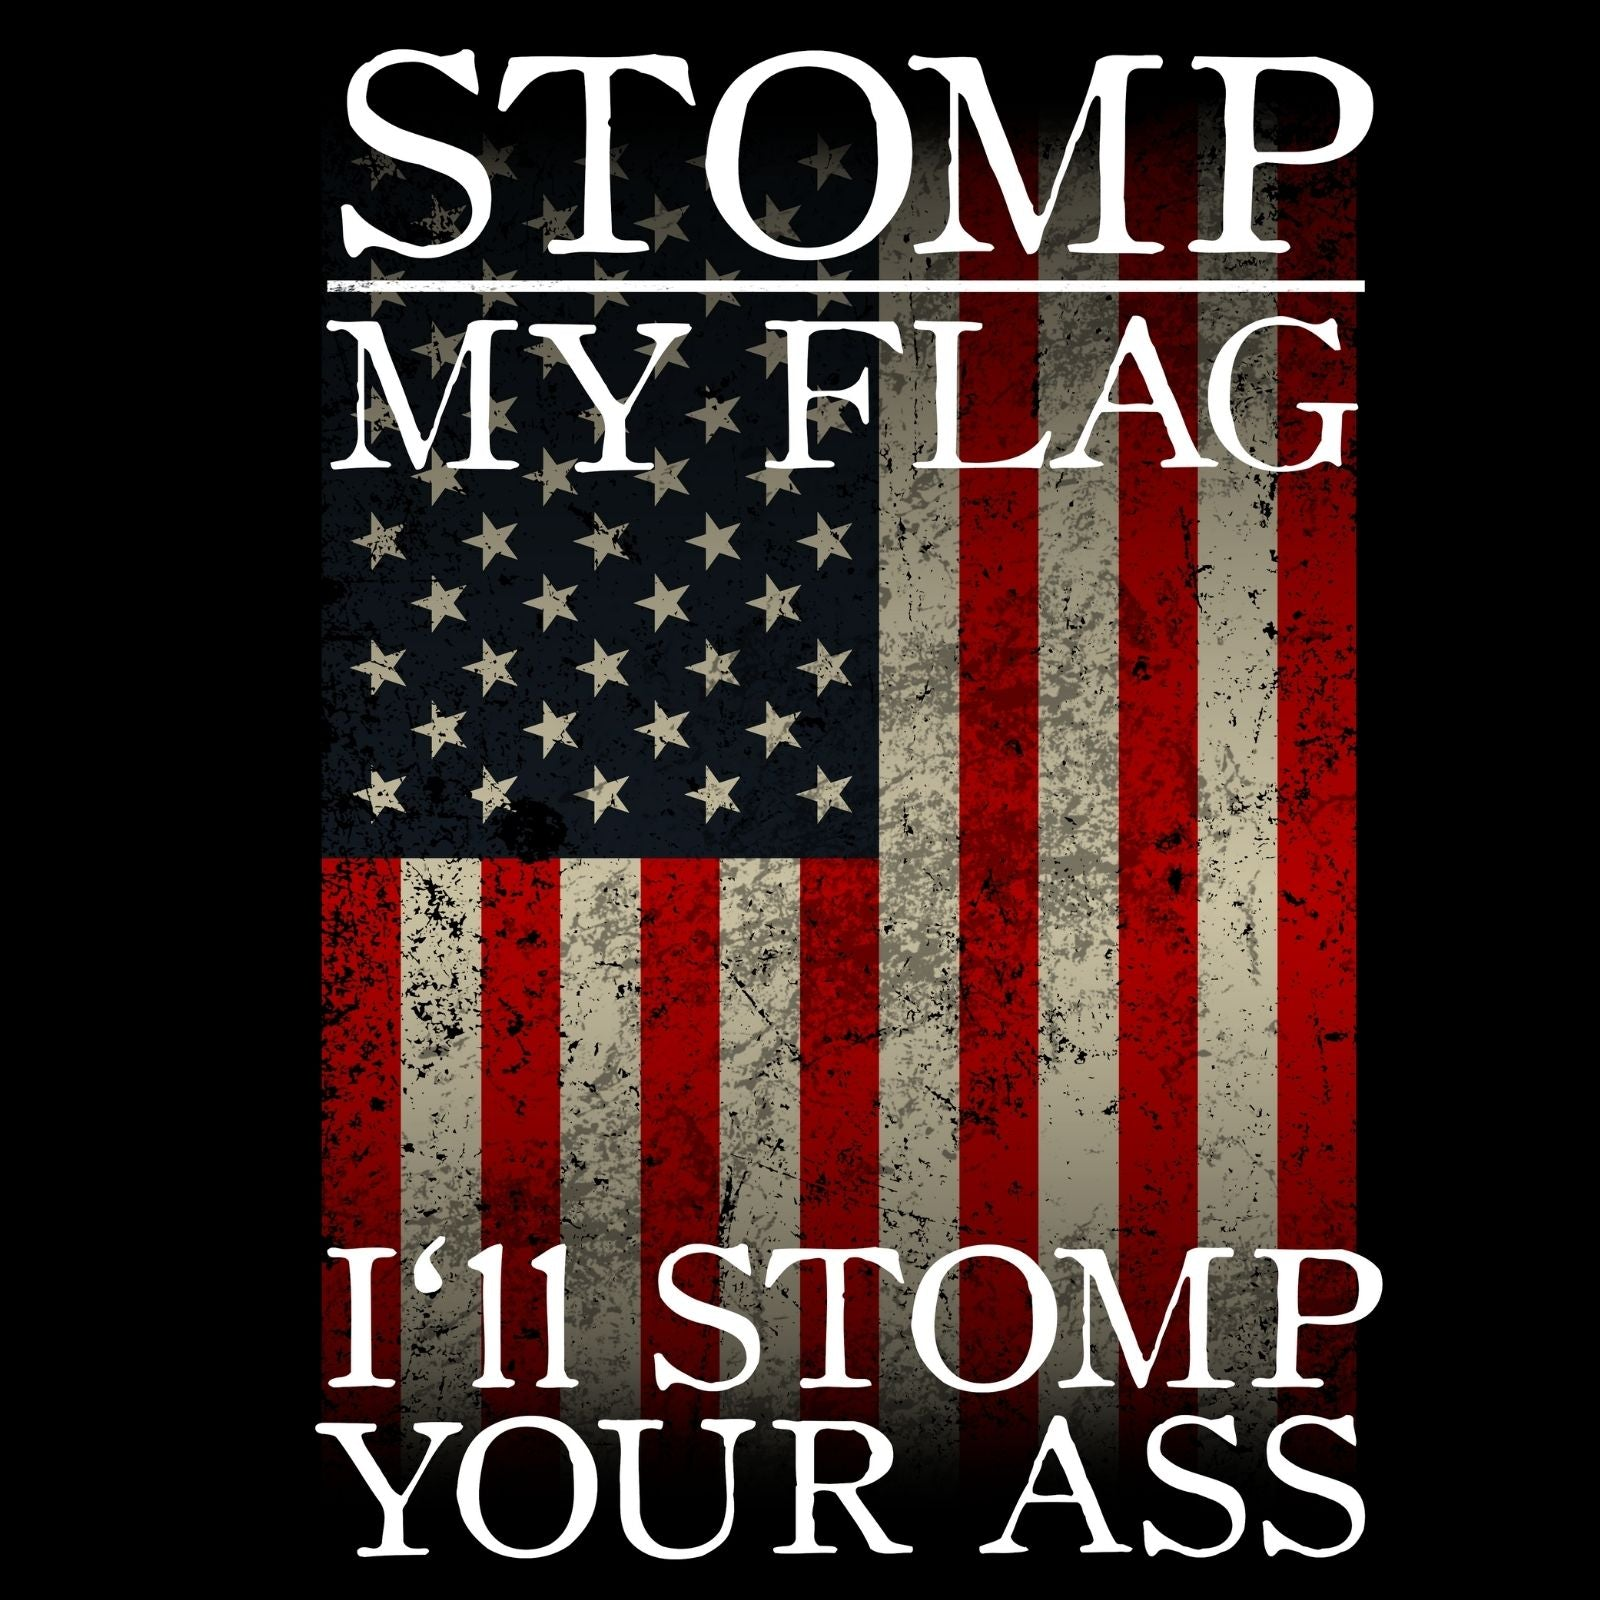 Stomp My Flag I'll Stomp Your Ass - Bastard Graphics